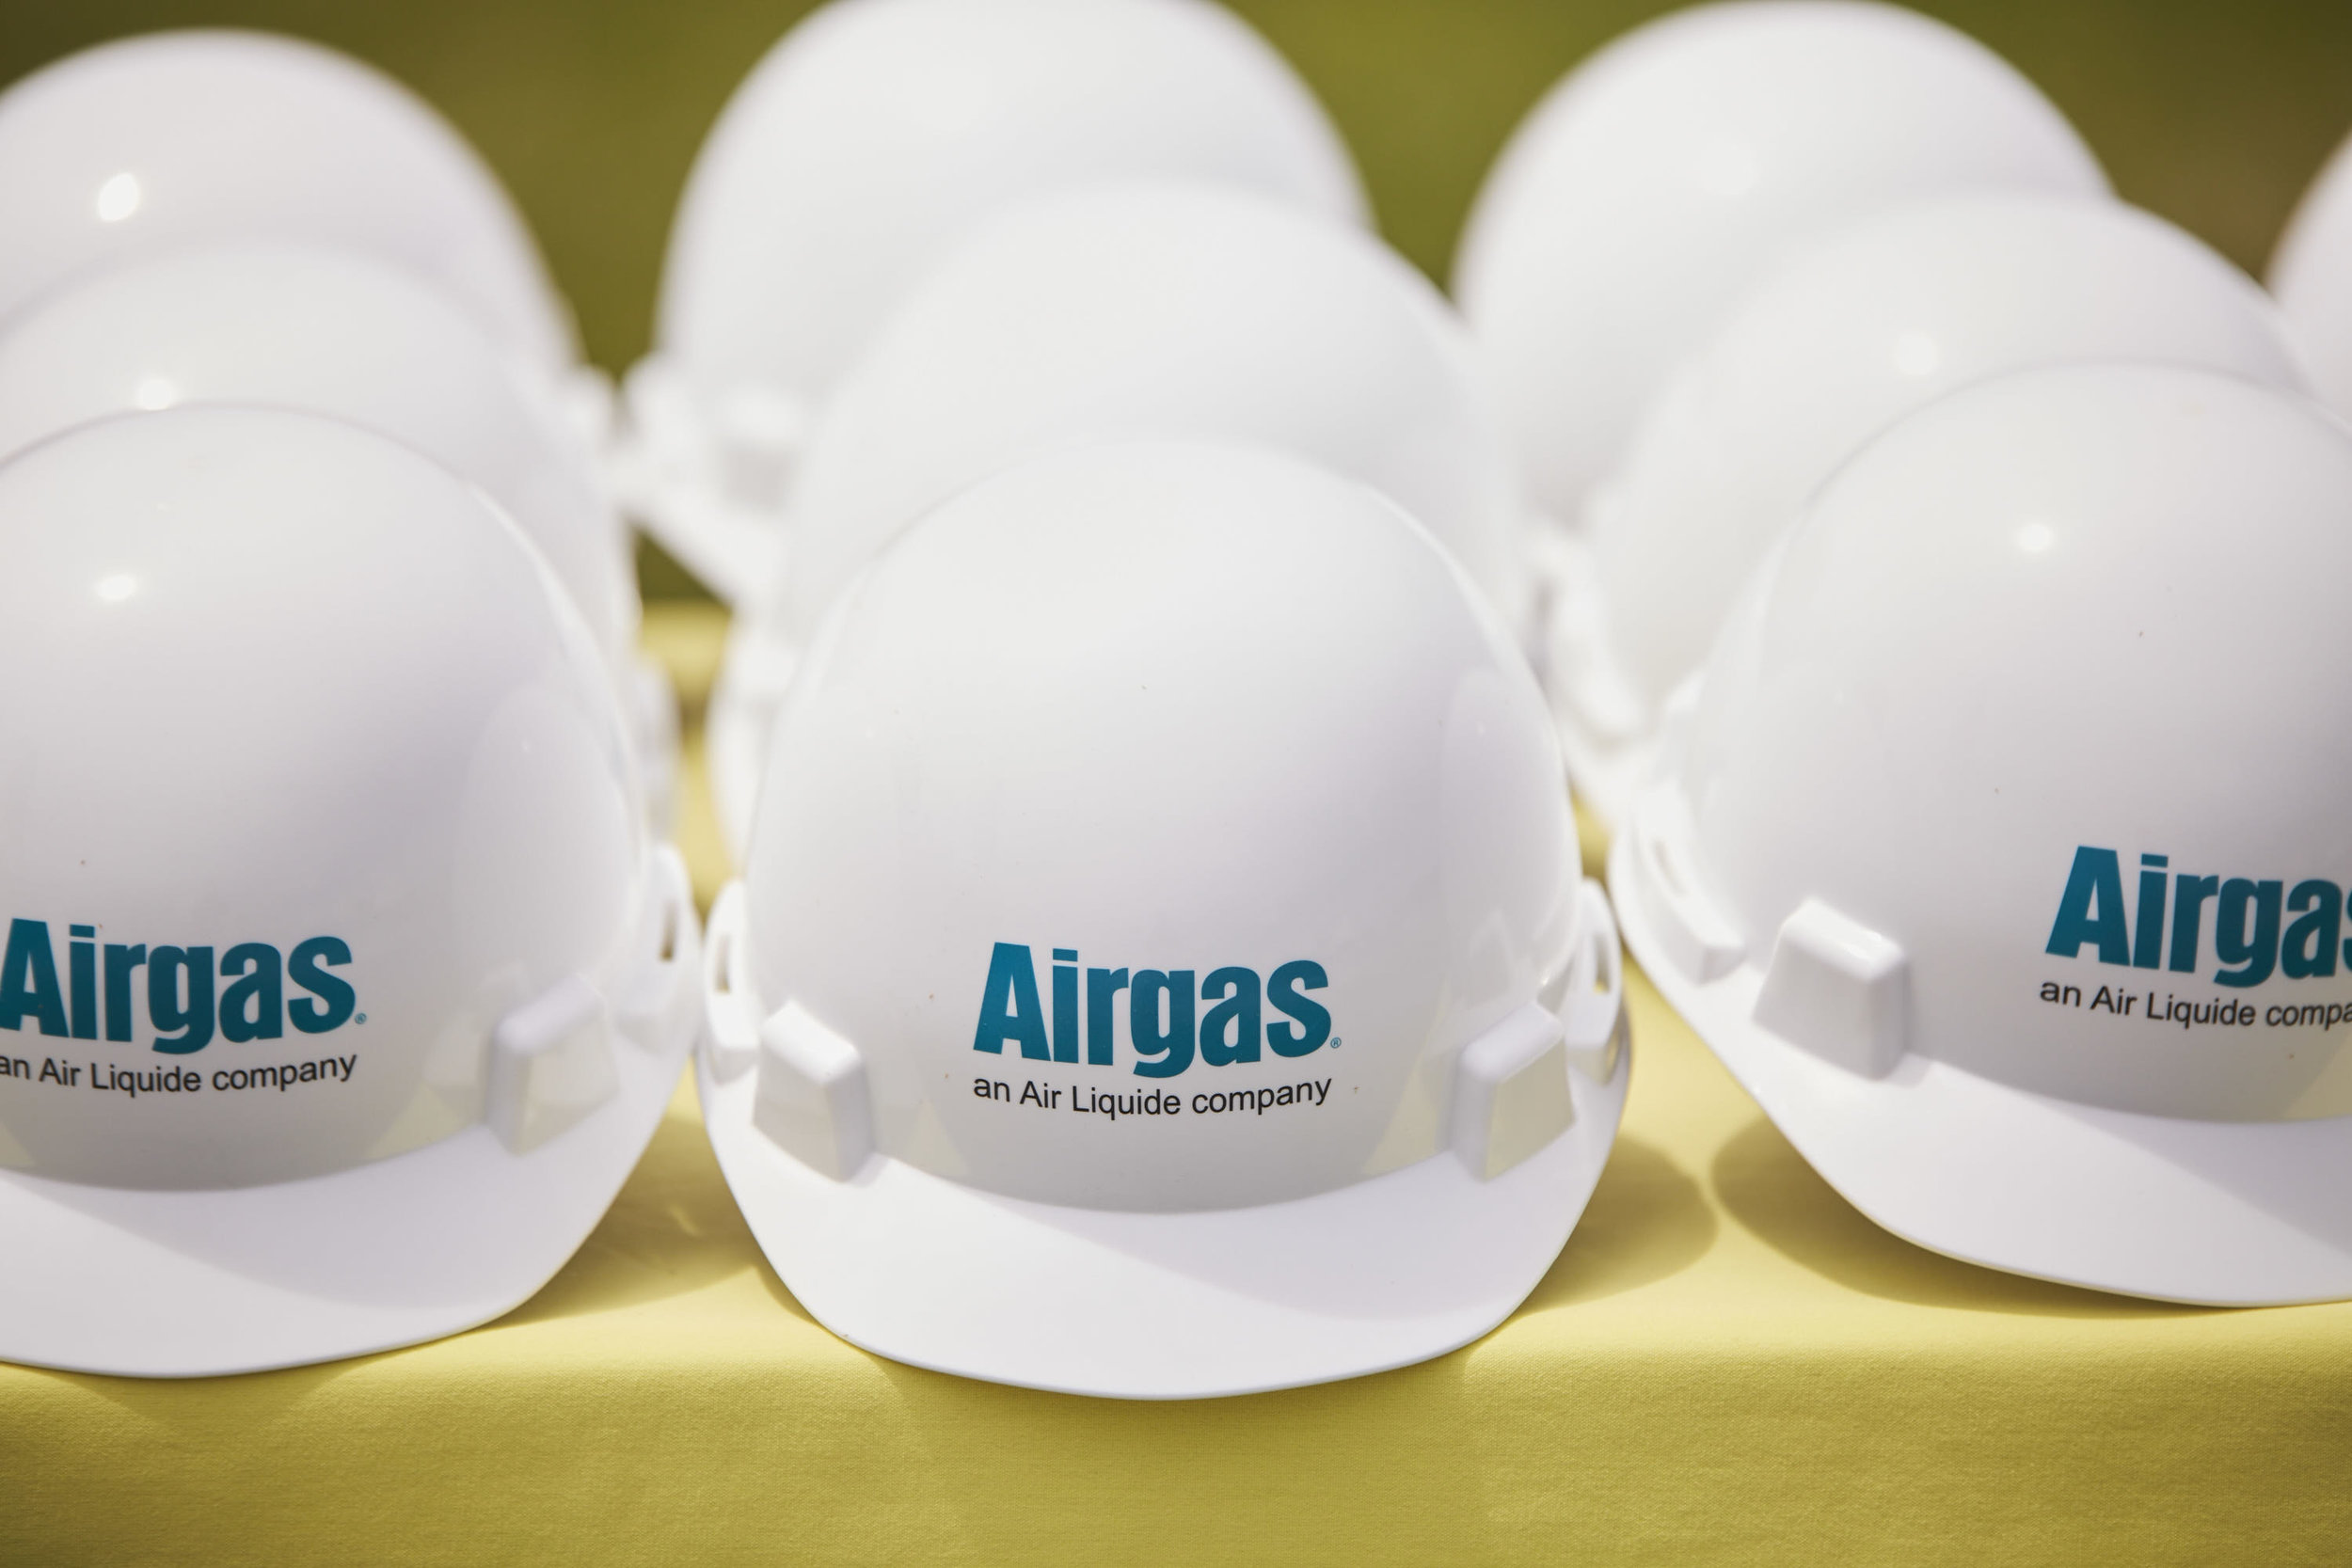 36687 - Airgas Ribbon Cutting - 05.23.17 - BRS.jpg